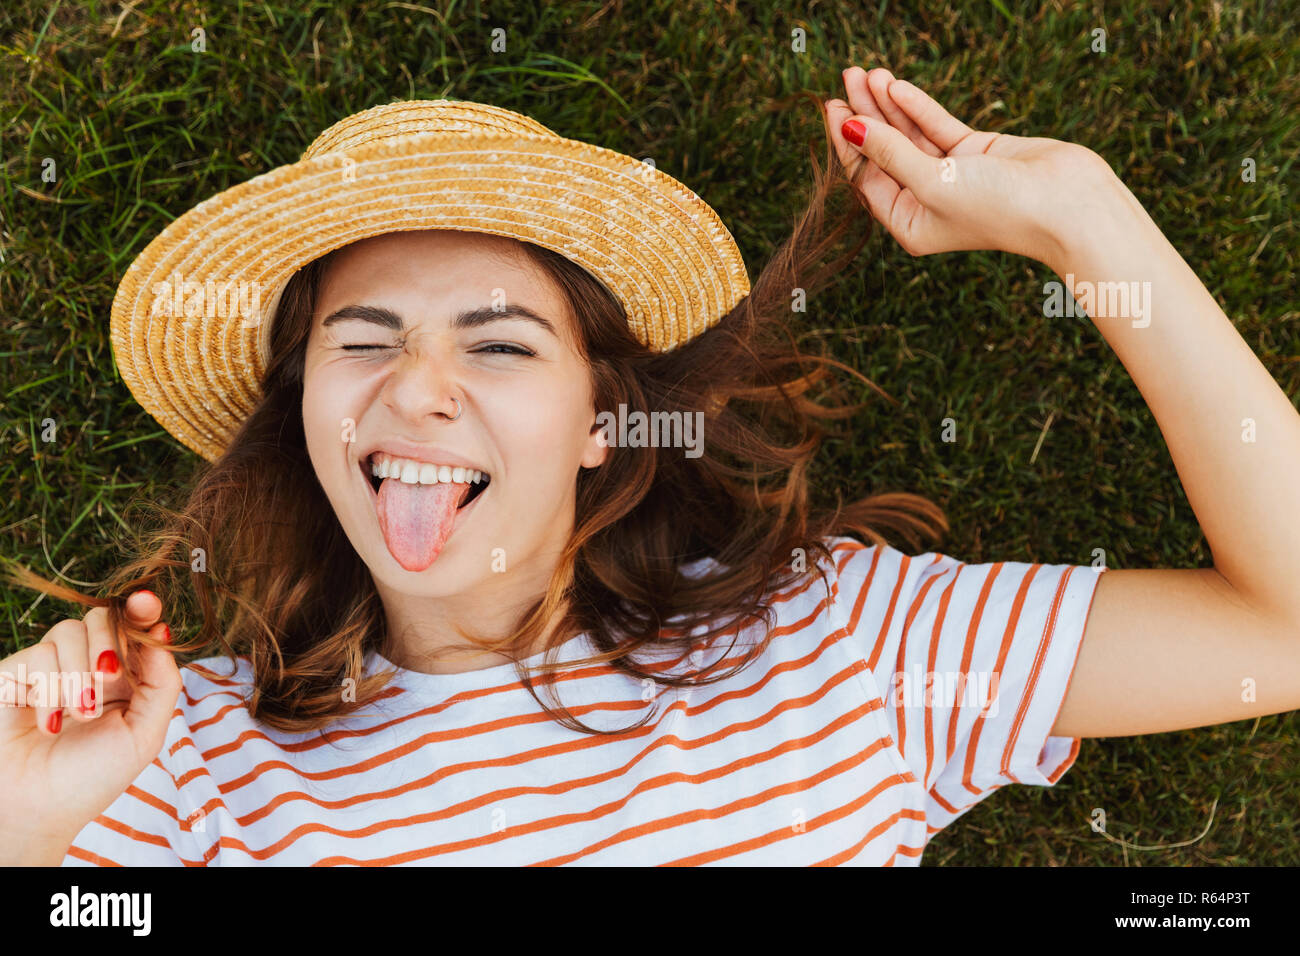 Top view of a lovely young girl in summer hat laying on a grass, grimacing, winking - Stock Image